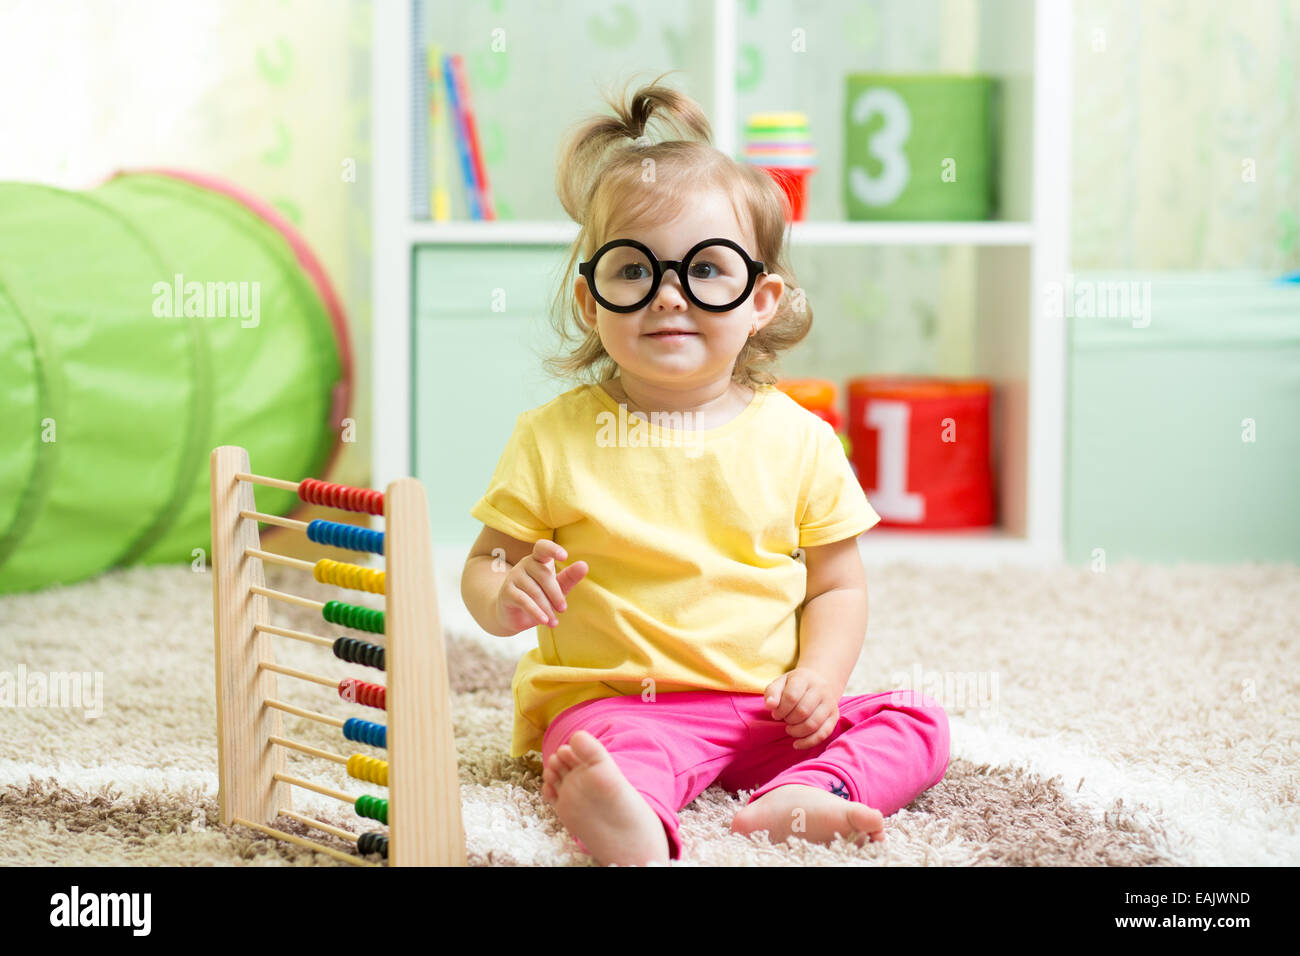 child with eyeglasses playing abacus - Stock Image